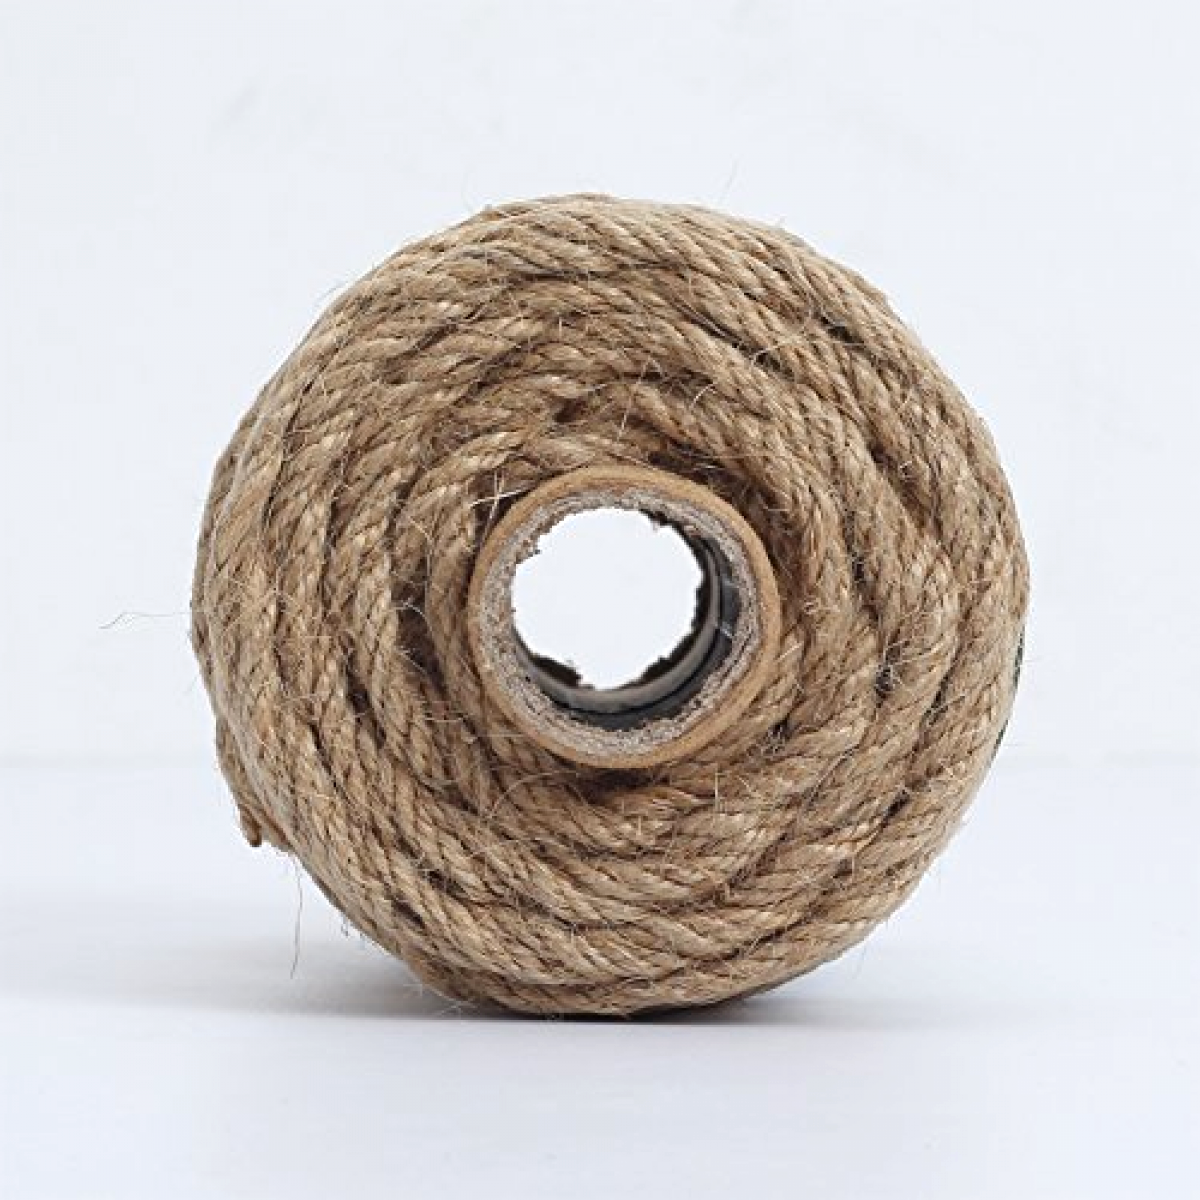 Bundling Gardening Home Decoration Recycling Hanging Christmas Gift Wrapping Bang4buck Natural 4mm Jute Twine 66 Feet Long Jute Rope Packing String for Art and Crafts DIY